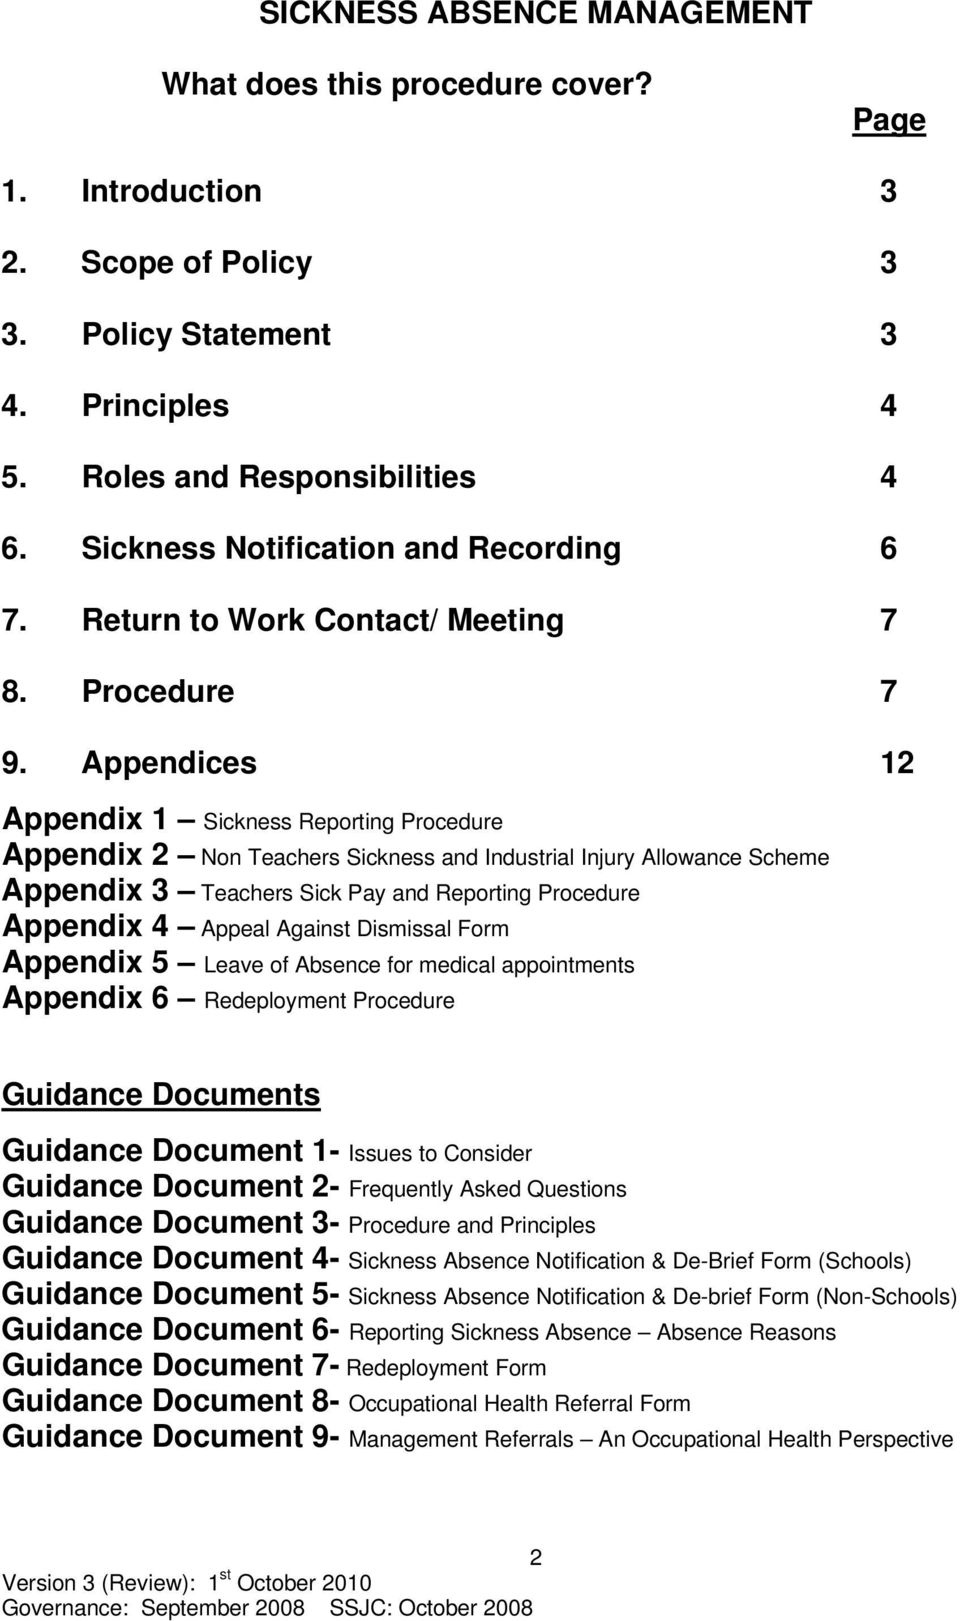 Appendices 12 Appendix 1 Sickness Reporting Procedure Appendix 2 Non Teachers Sickness and Industrial Injury Allowance Scheme Appendix 3 Teachers Sick Pay and Reporting Procedure Appendix 4 Appeal